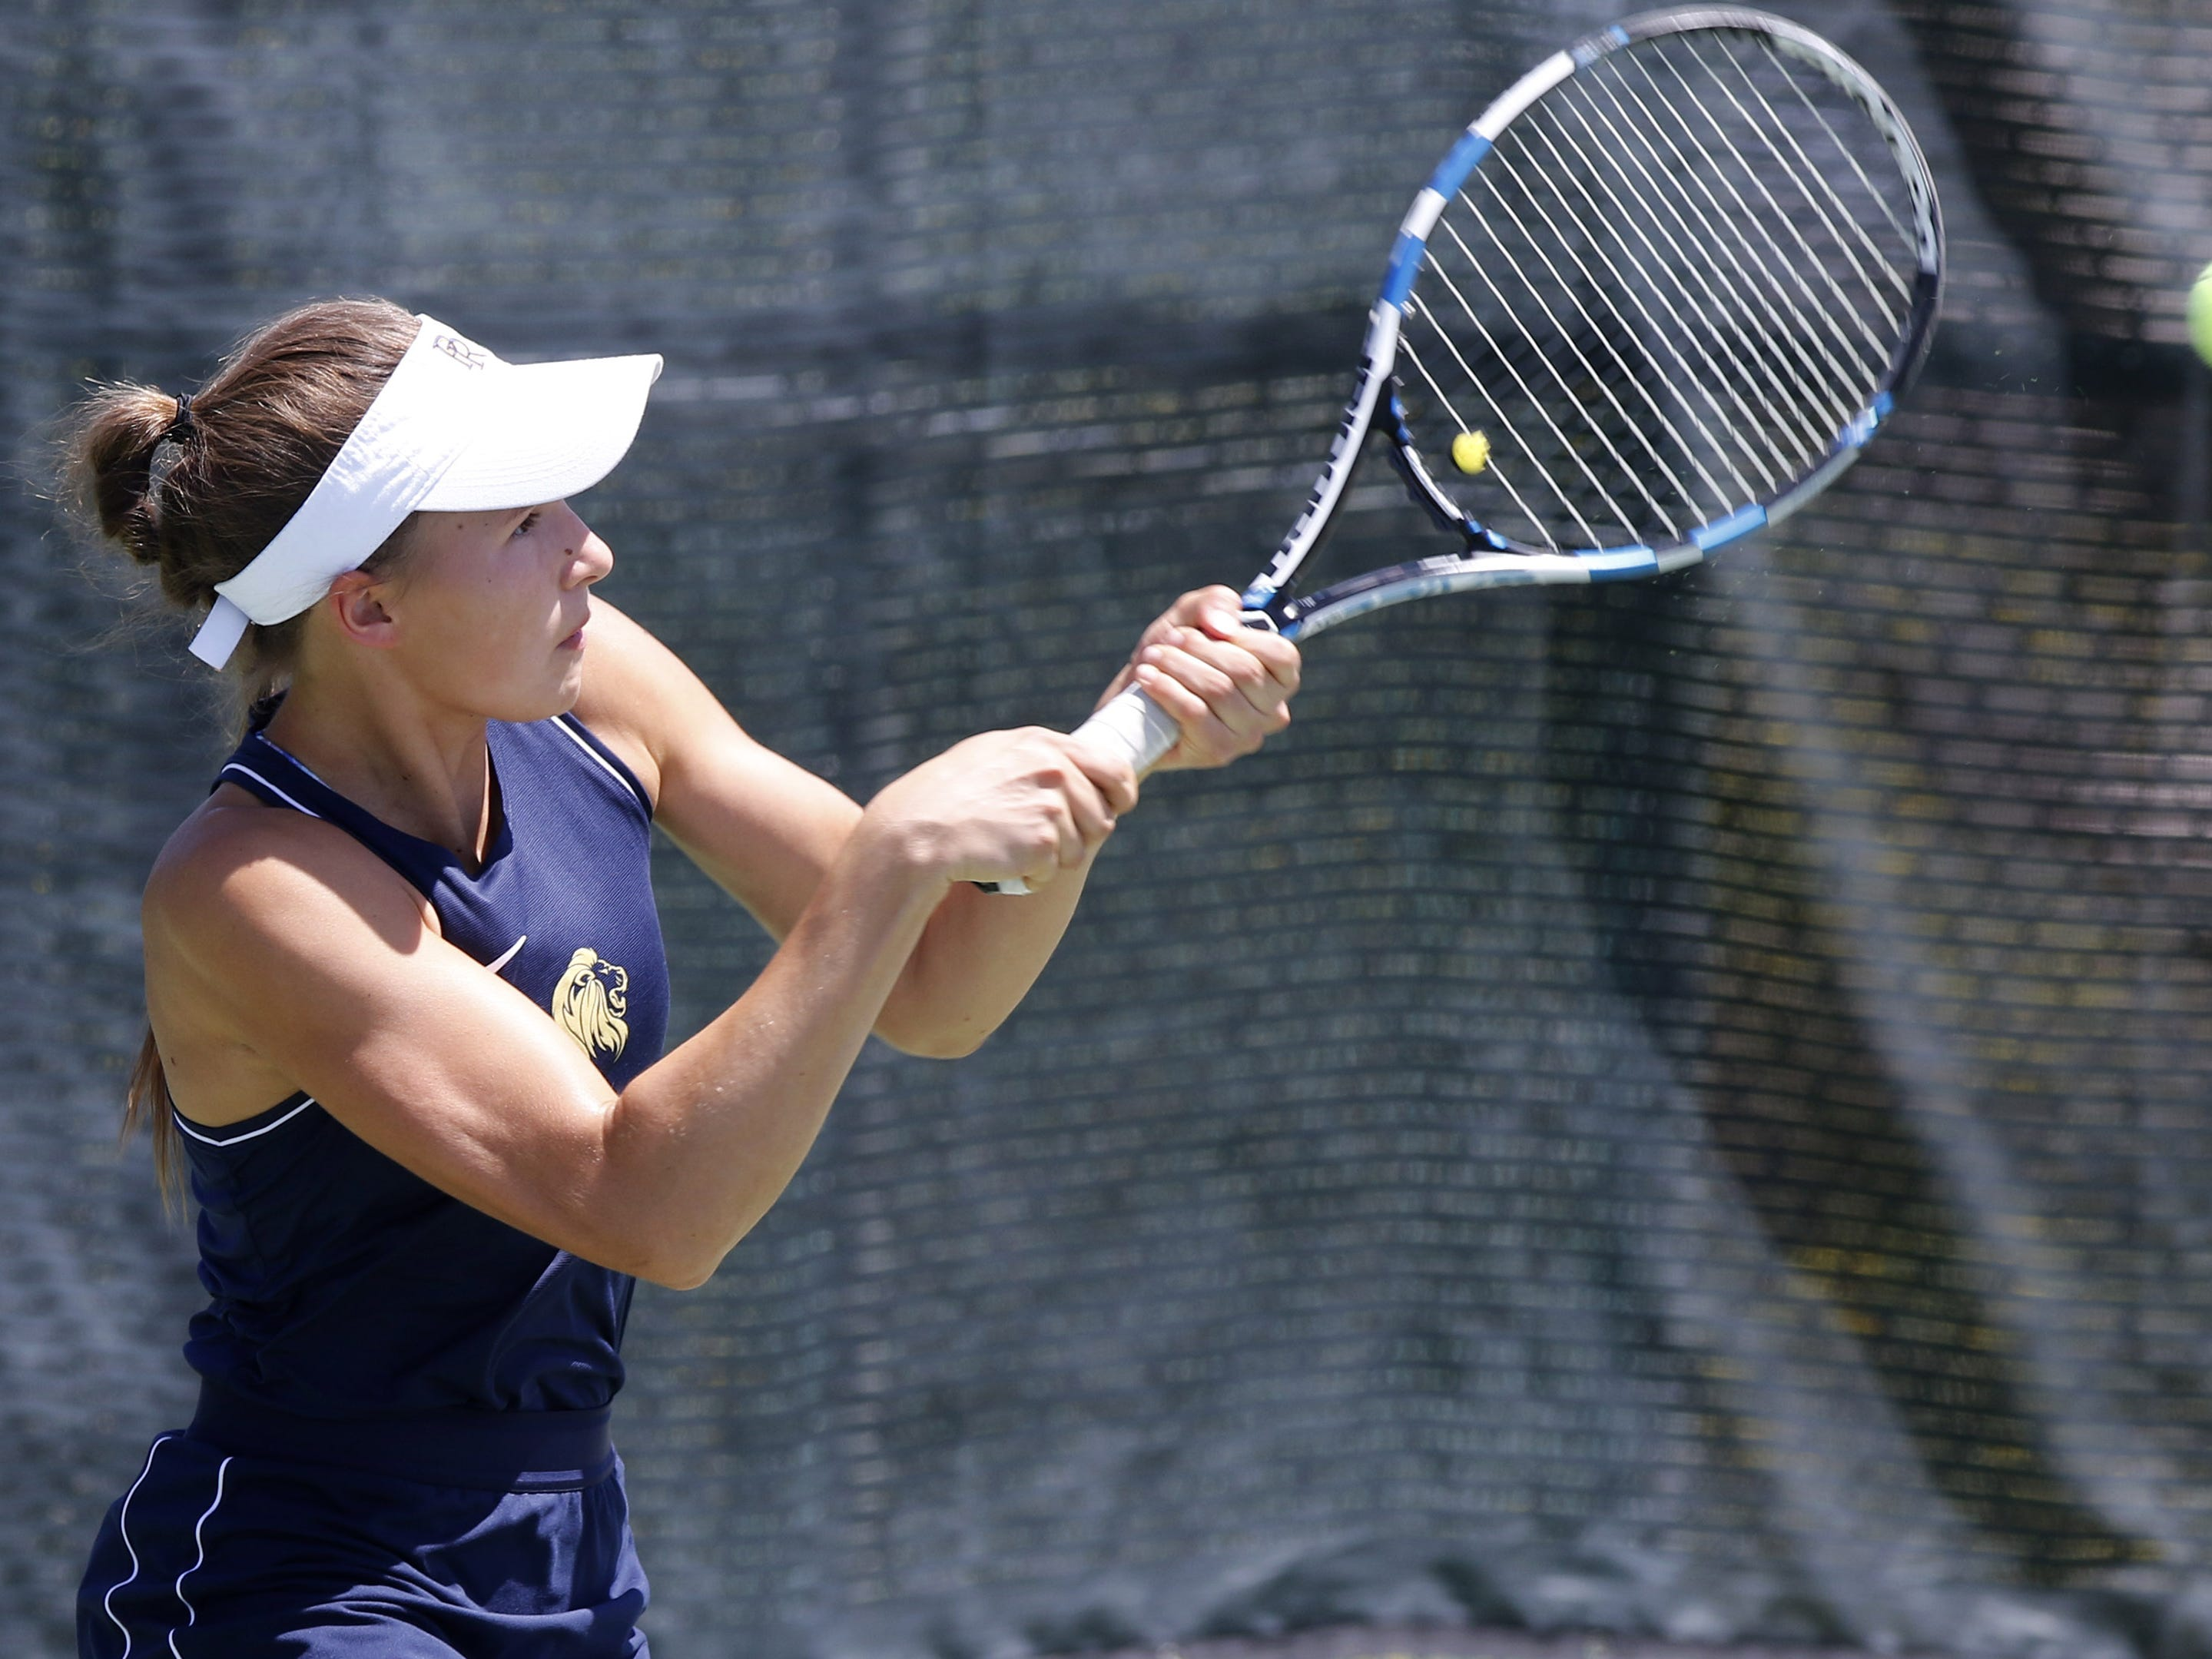 Pusch Ridge's Sofia Fetsis hits her backhand against Thatcher during the Division III tennis team state championship in Glendale, Arizona, May 04, 2019.